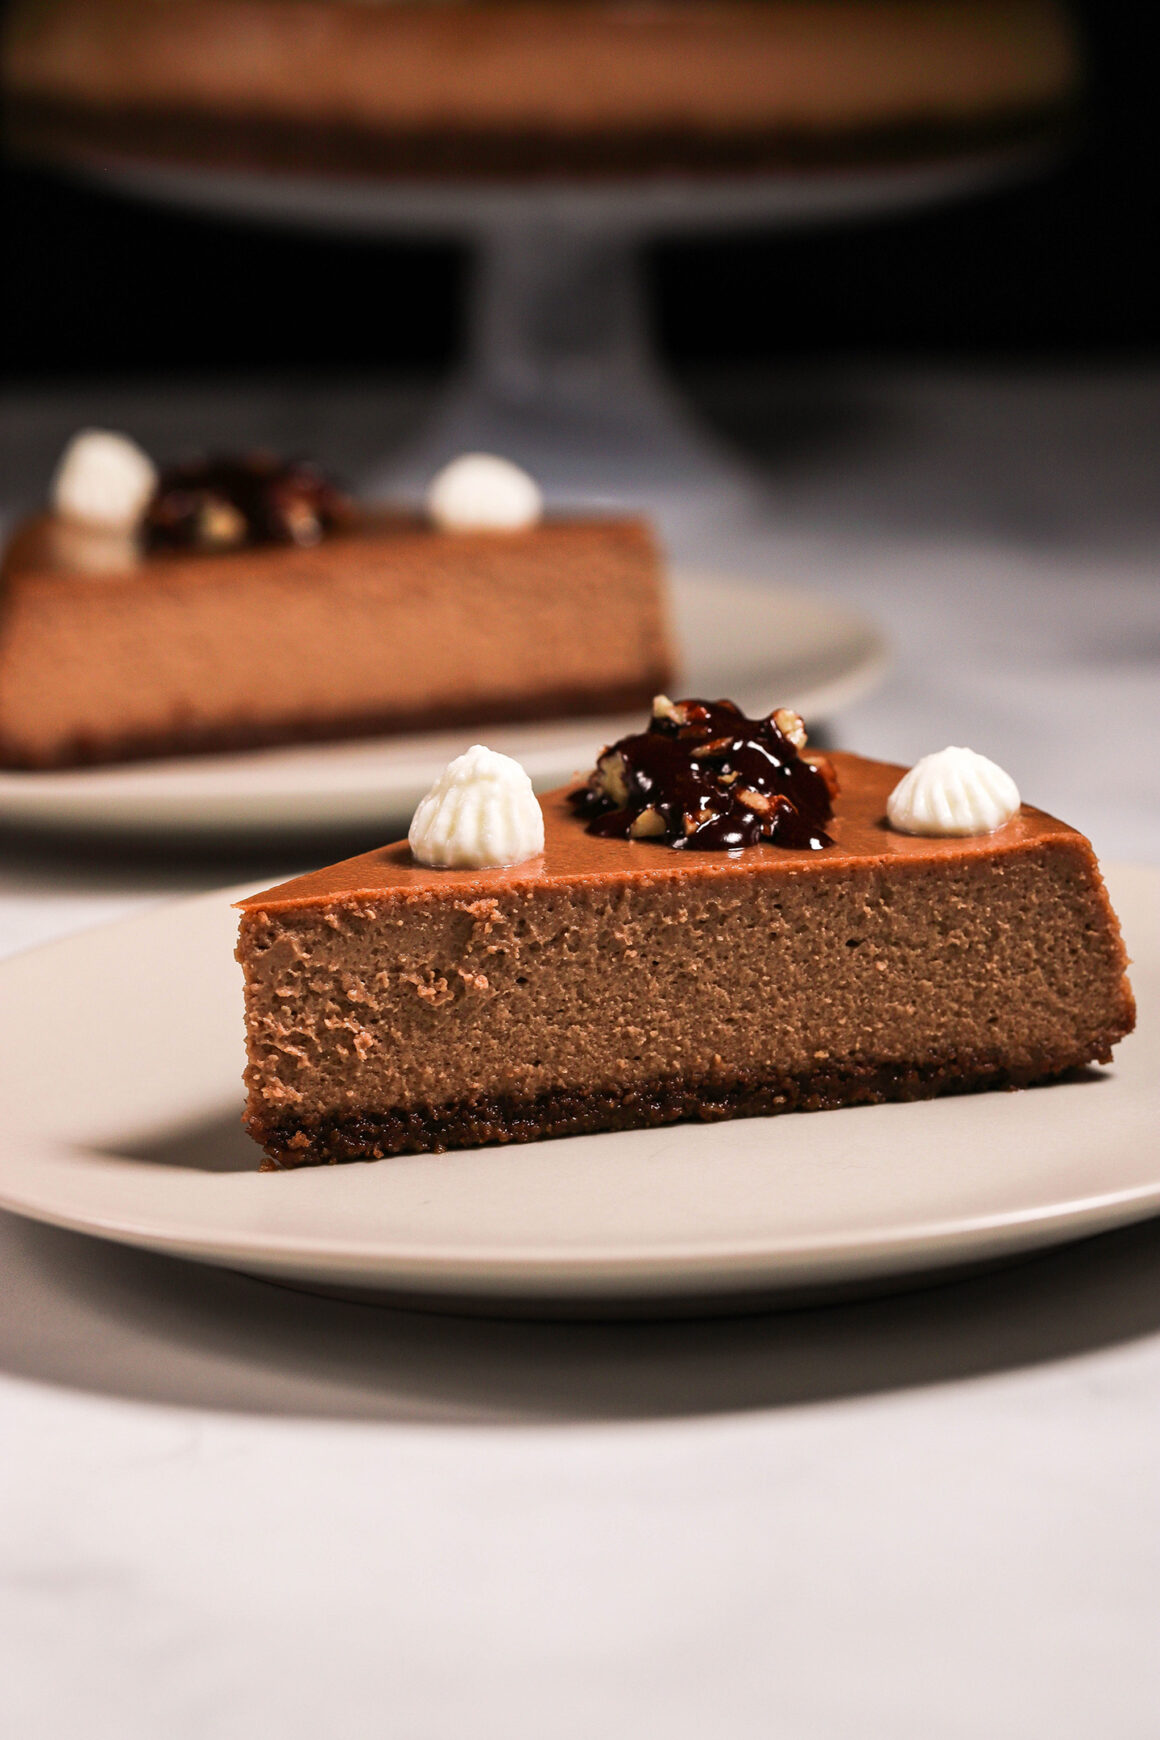 Mocha Cheesecake with Pecans and Espresso Chocolate Sauce